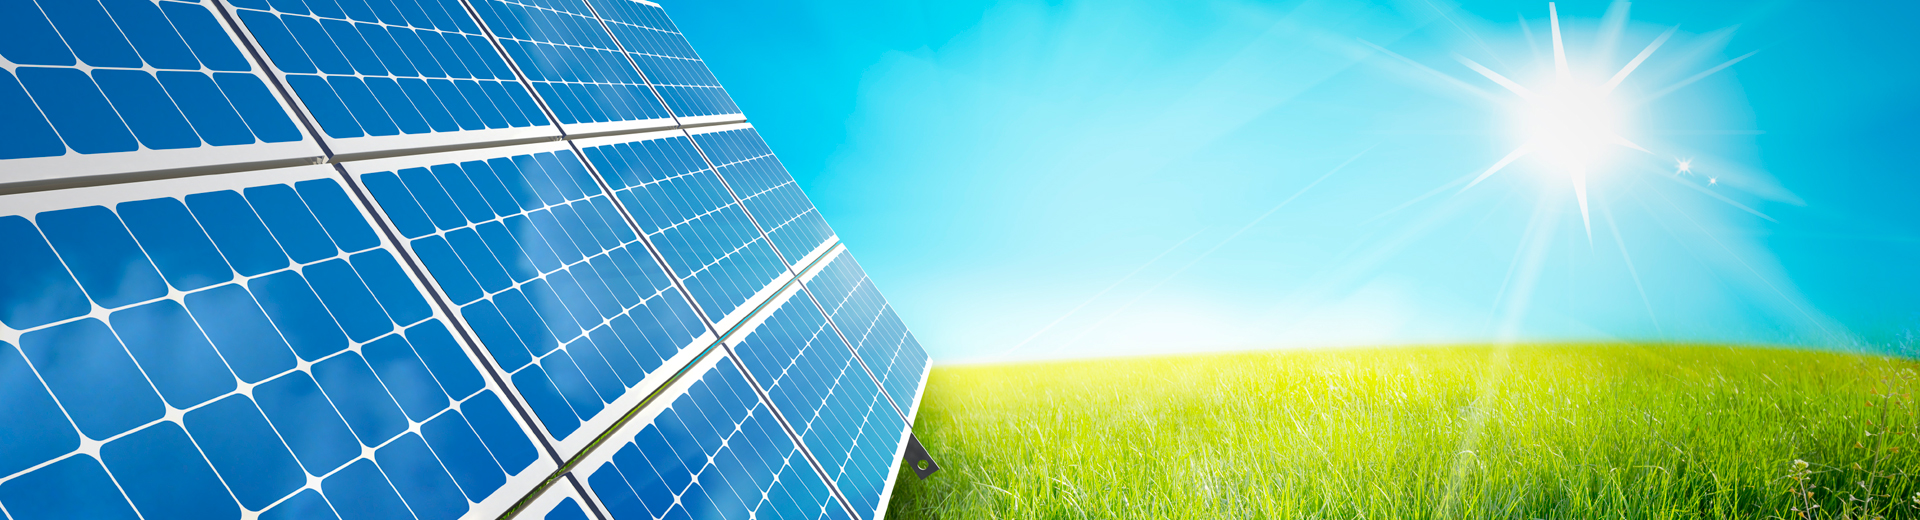 solar panel desktop wallpaper - photo #41